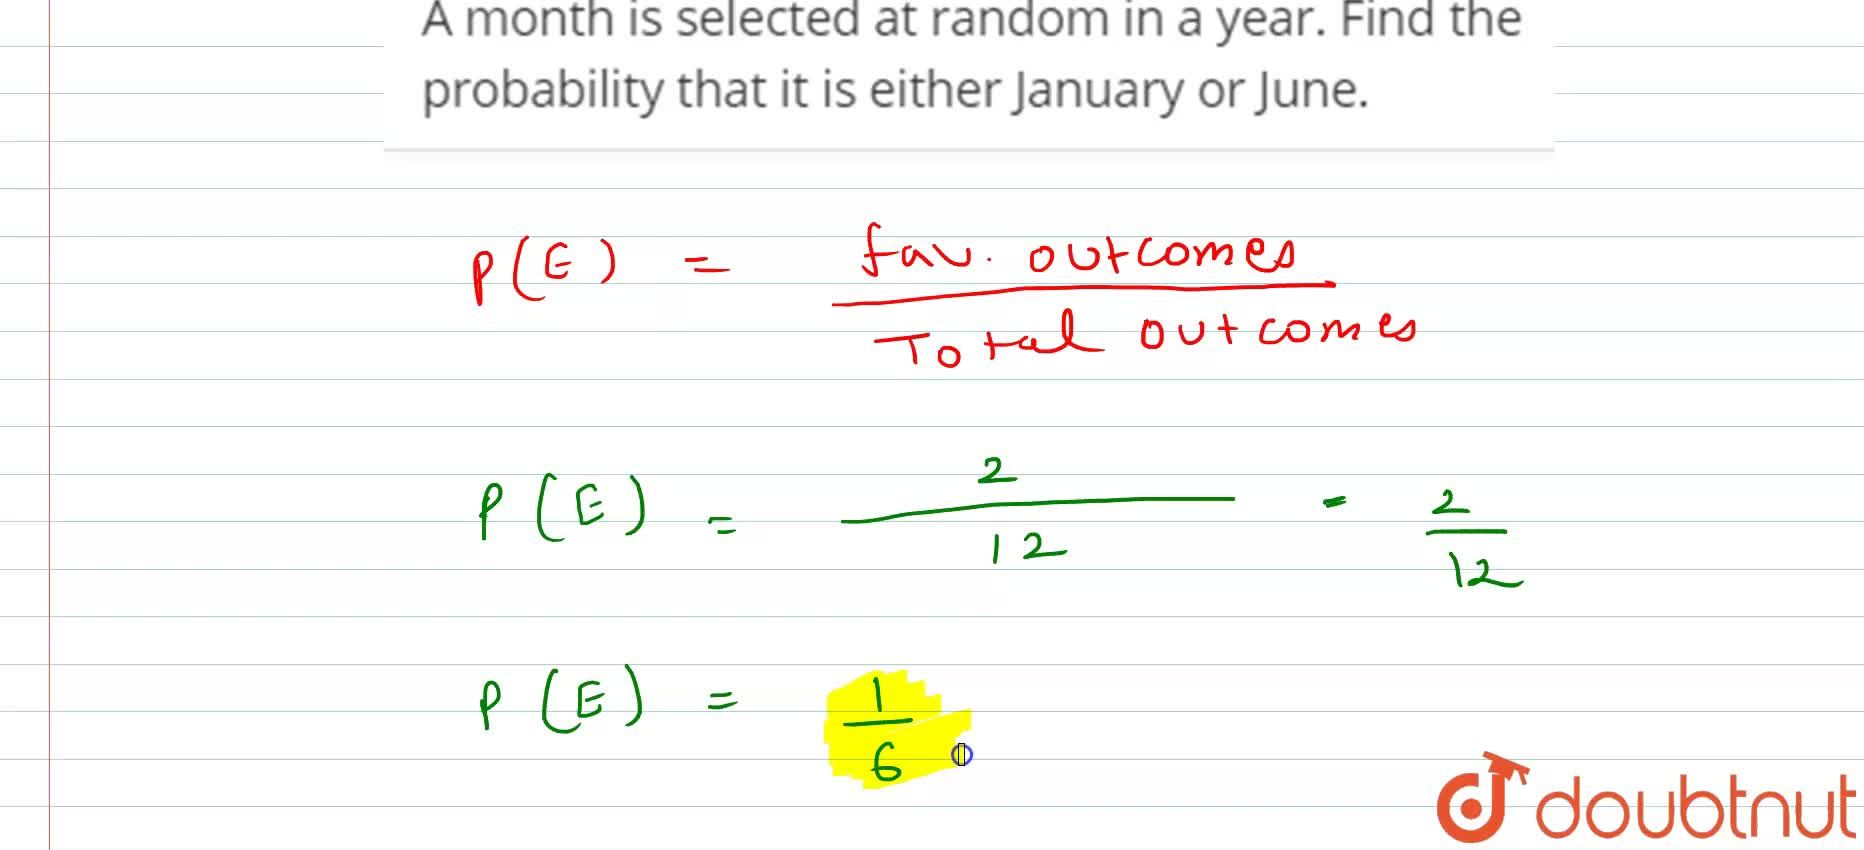 Solution for A month is selected at random in a year. Find the